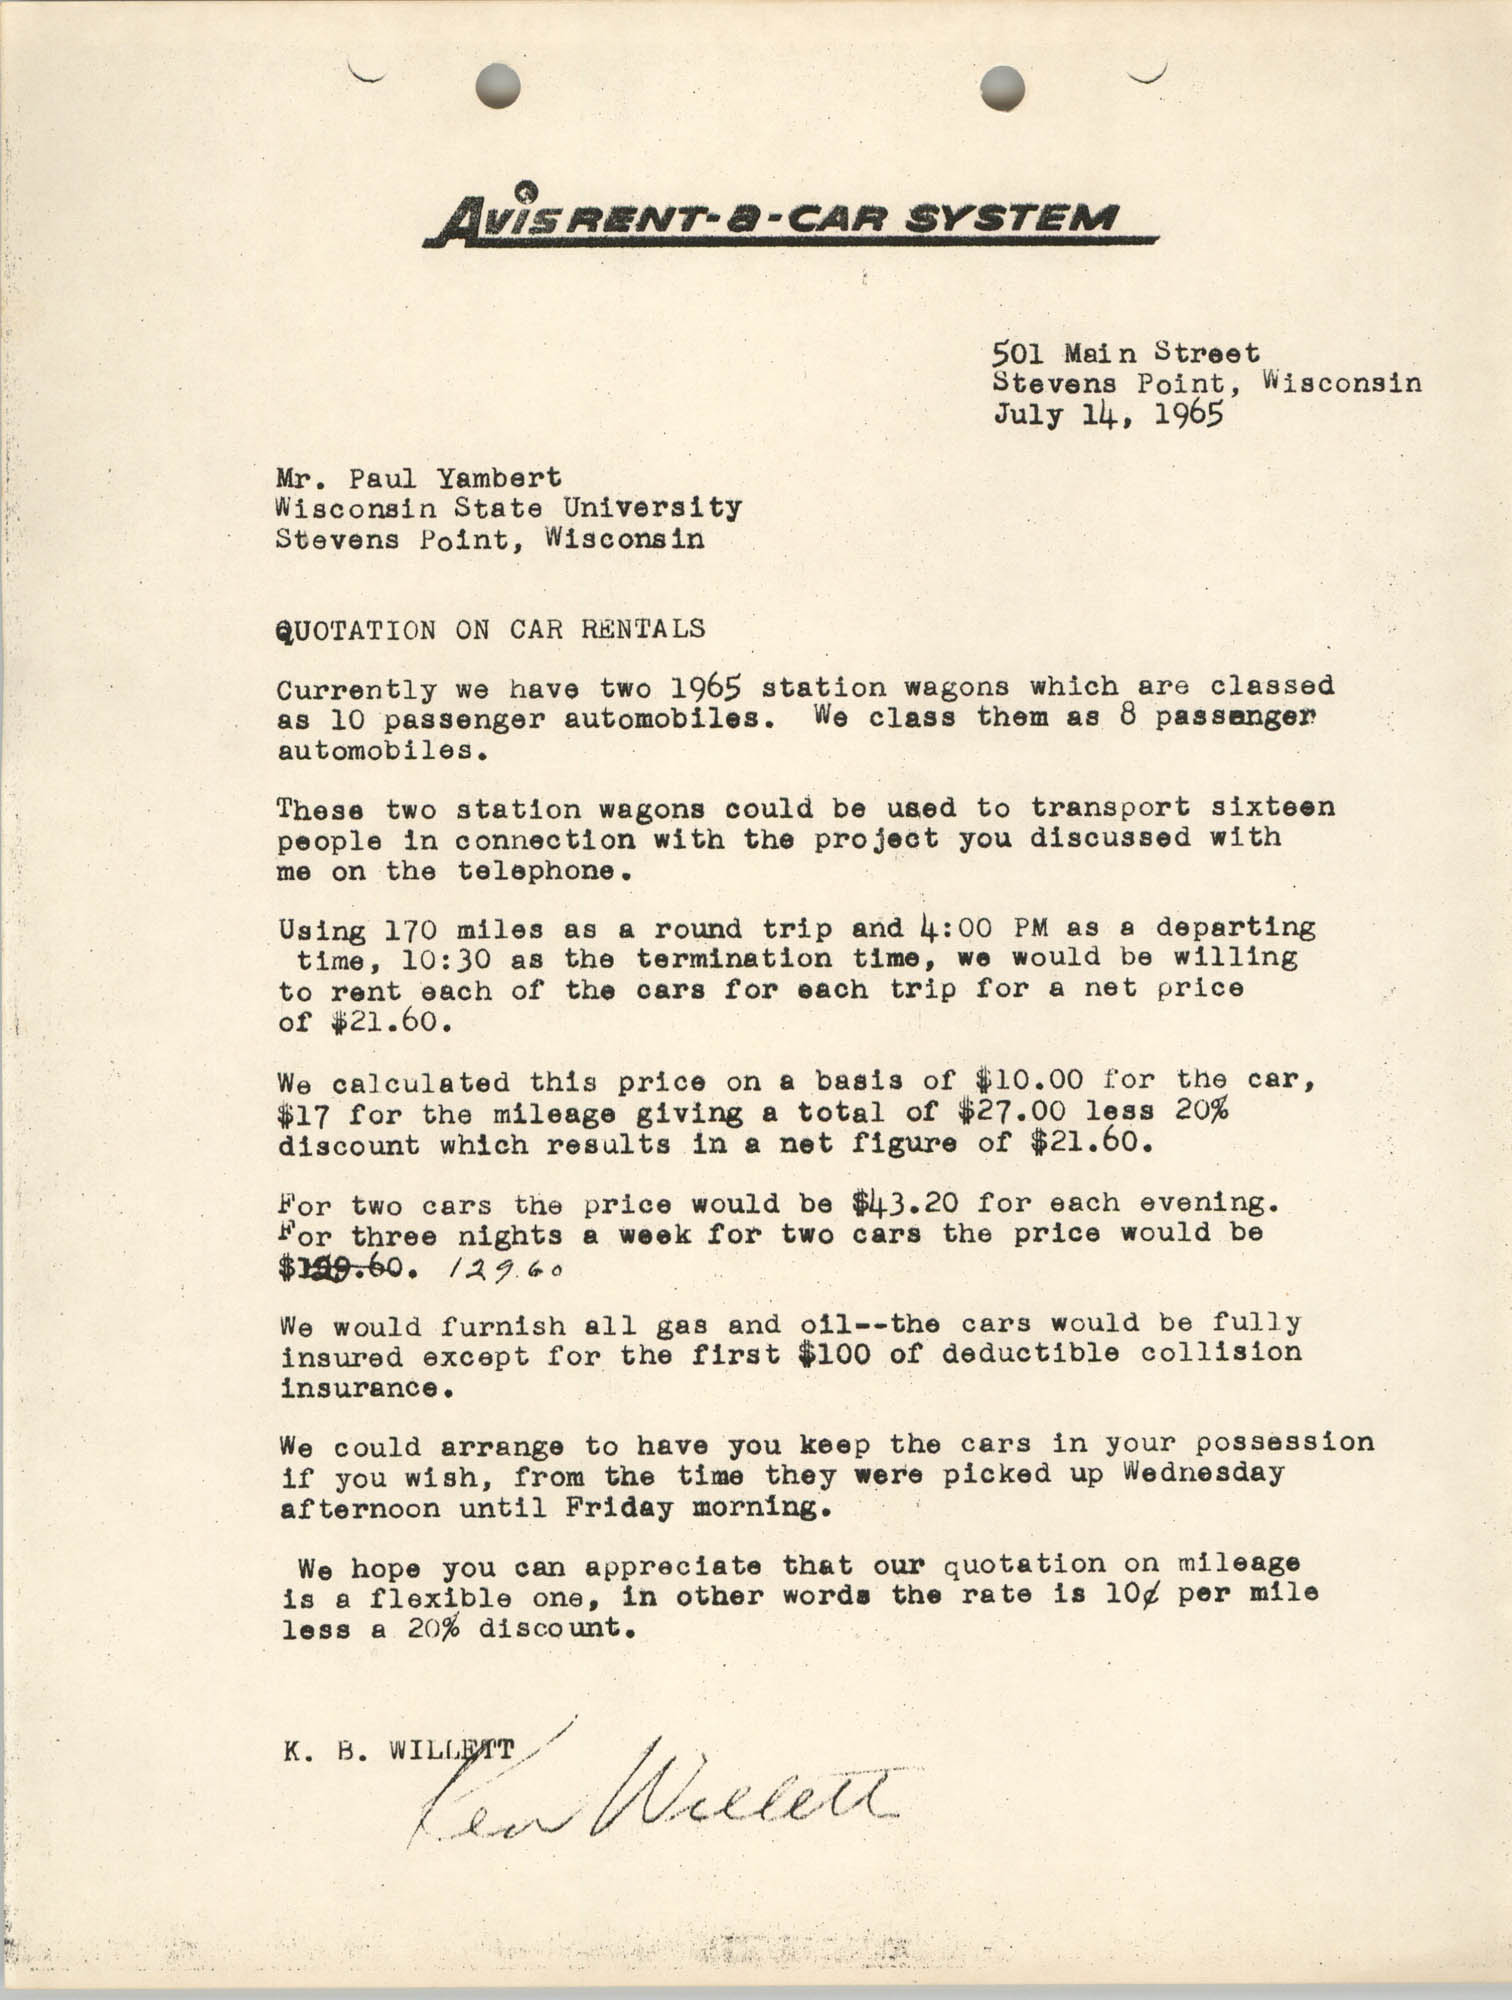 Letter from K. S. Willett to Paul Yambert, July 14, 1965